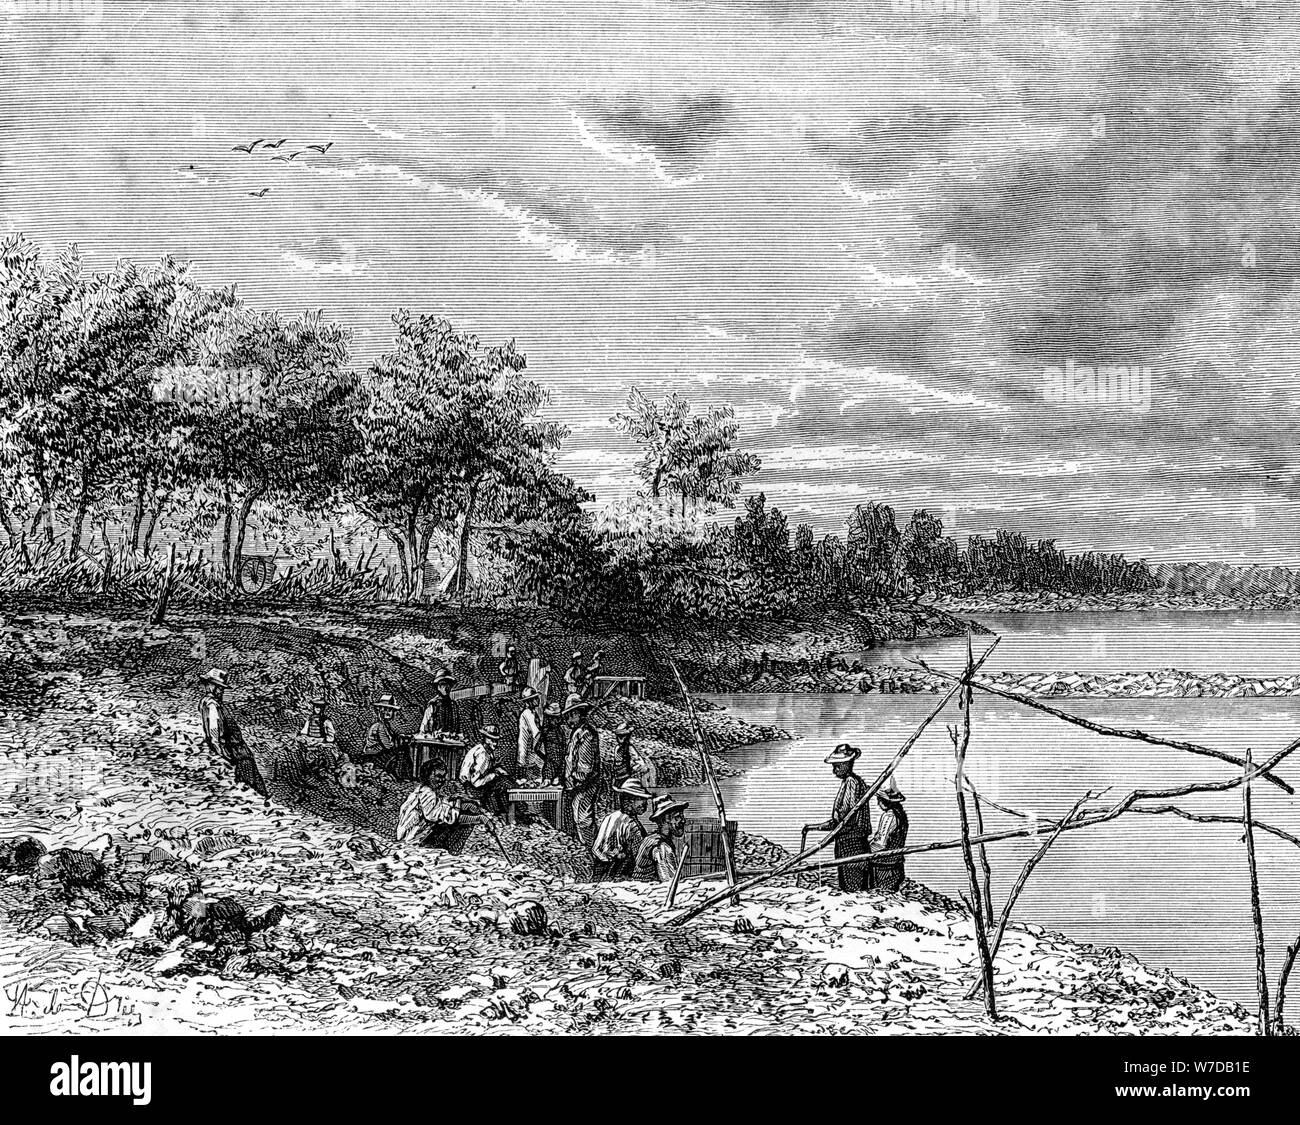 SOUTH AFRICA Pontoon over the Vaal River at Klipdrift Antique Print 1874